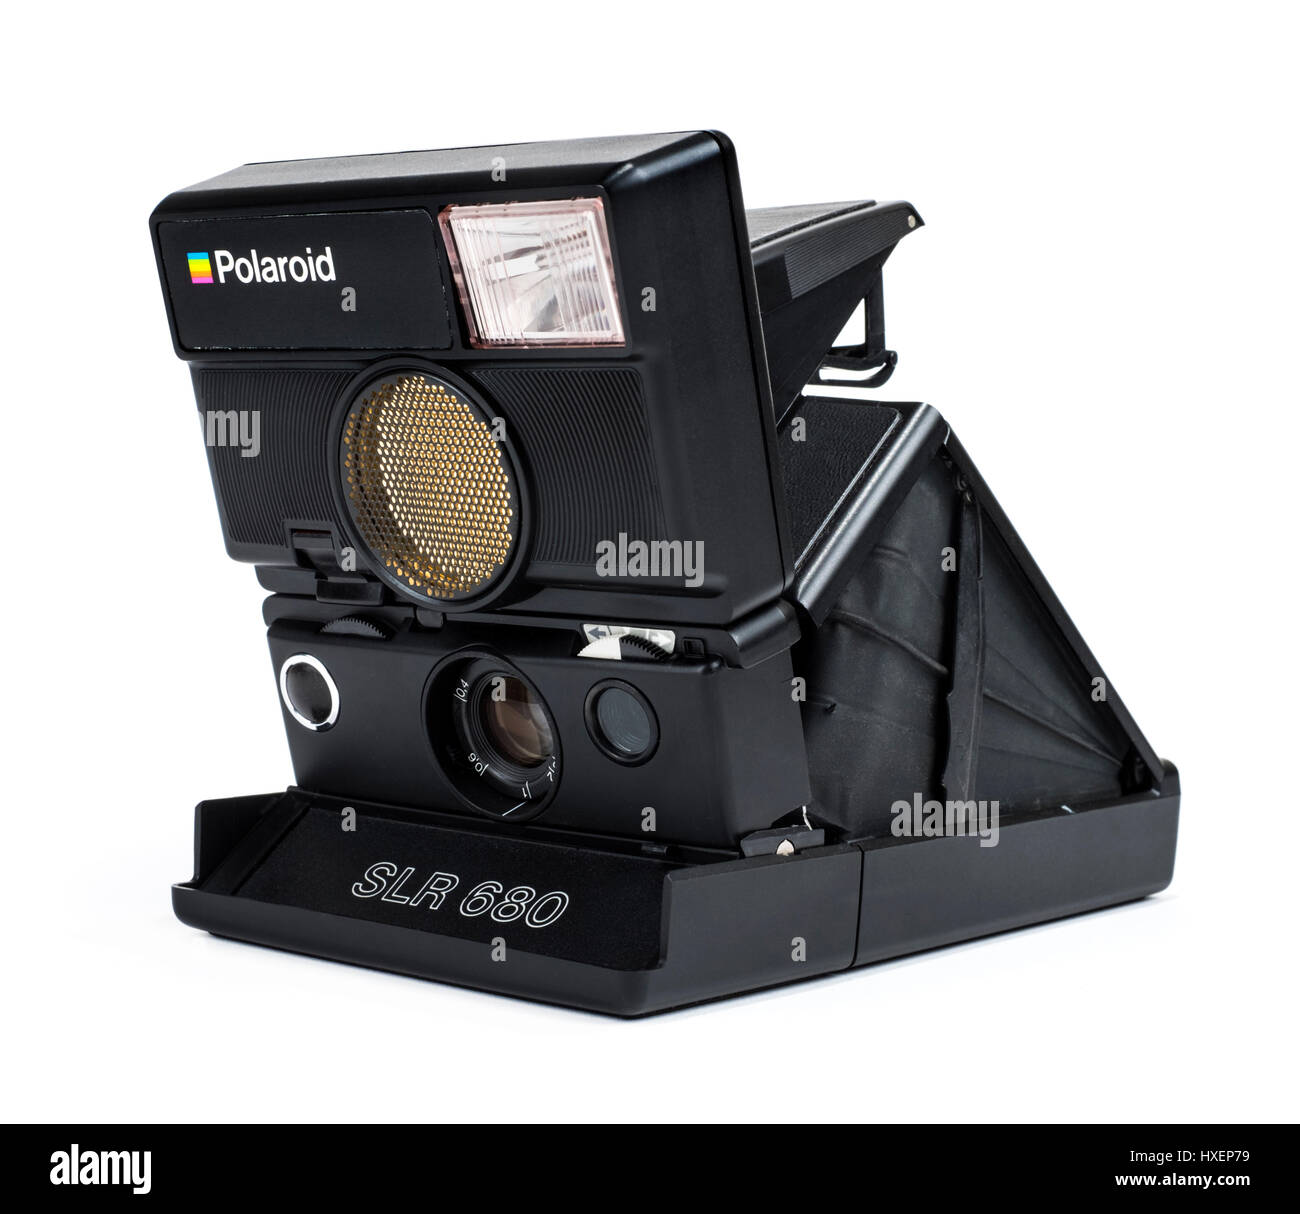 Vintage 1980's Polaroid SLR 680 folding instant film camera with revolutionary Sonar autofocus system and auto - Stock Image